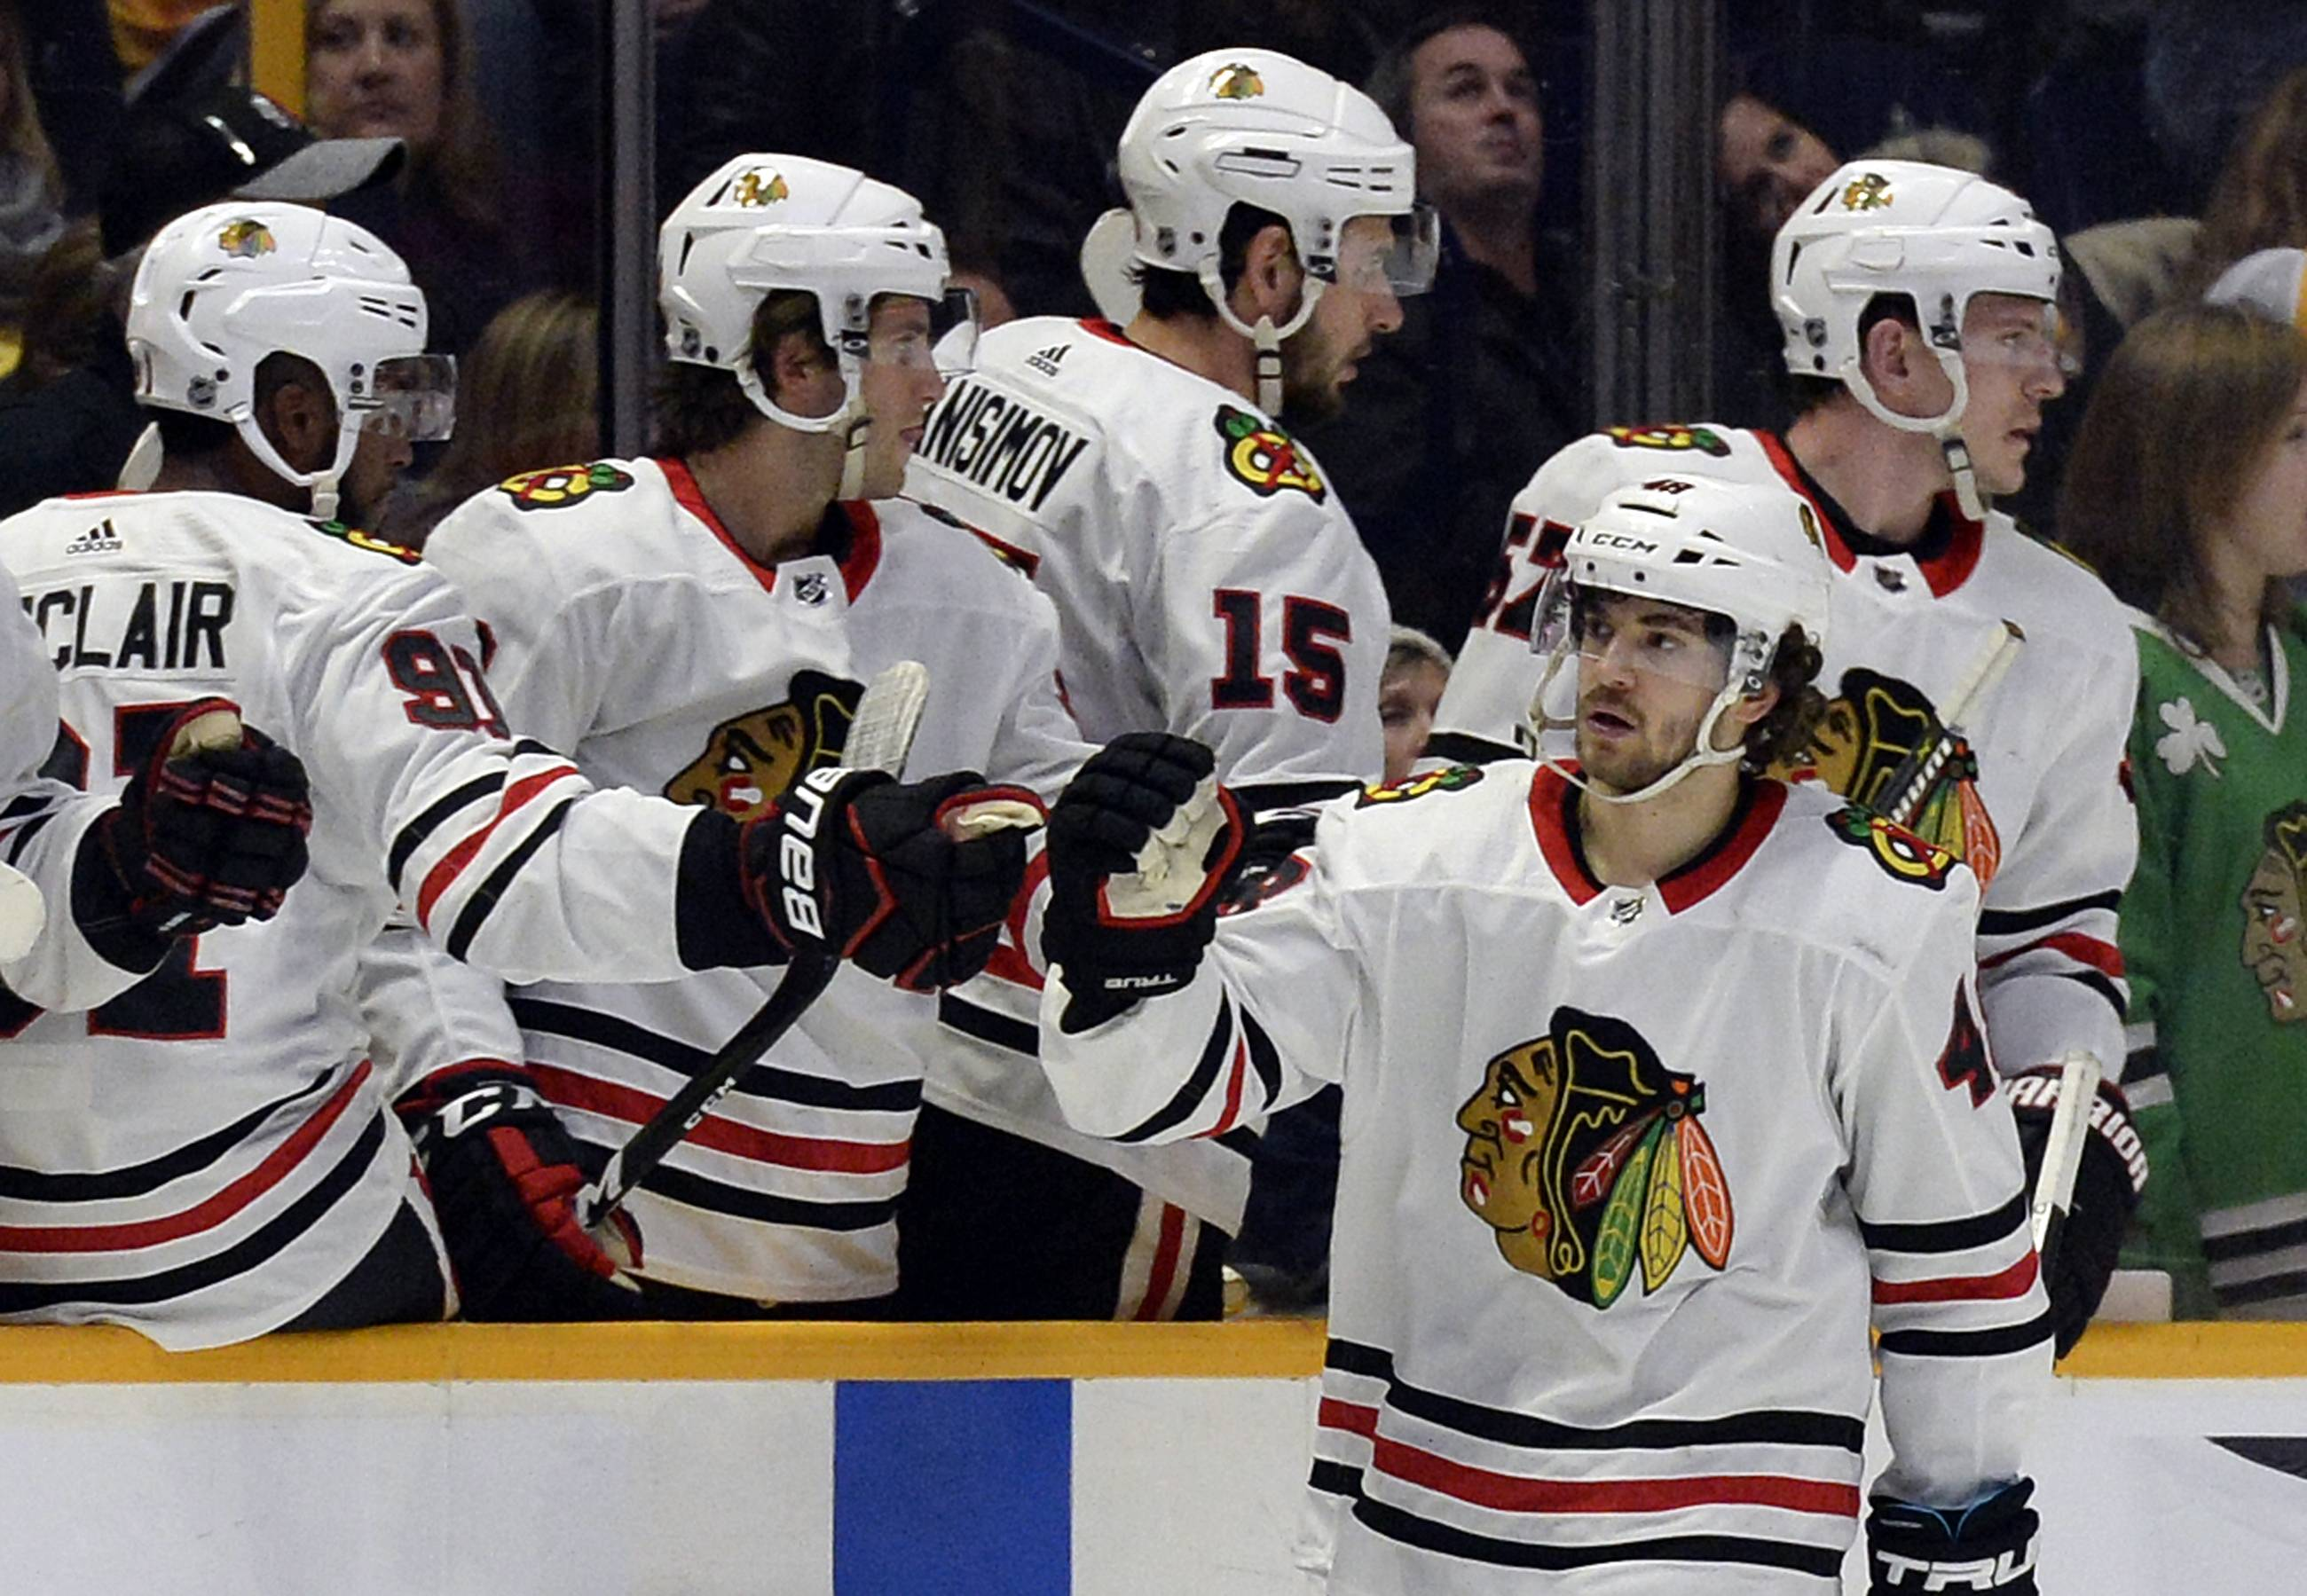 Chicago Blackhawks left wing Vinnie Hinostroza (48) is congratulated after scoring a goal against the Nashville Predators during the second period of an NHL hockey game Tuesday, Jan. 30, 2018, in Nashville, Tenn.